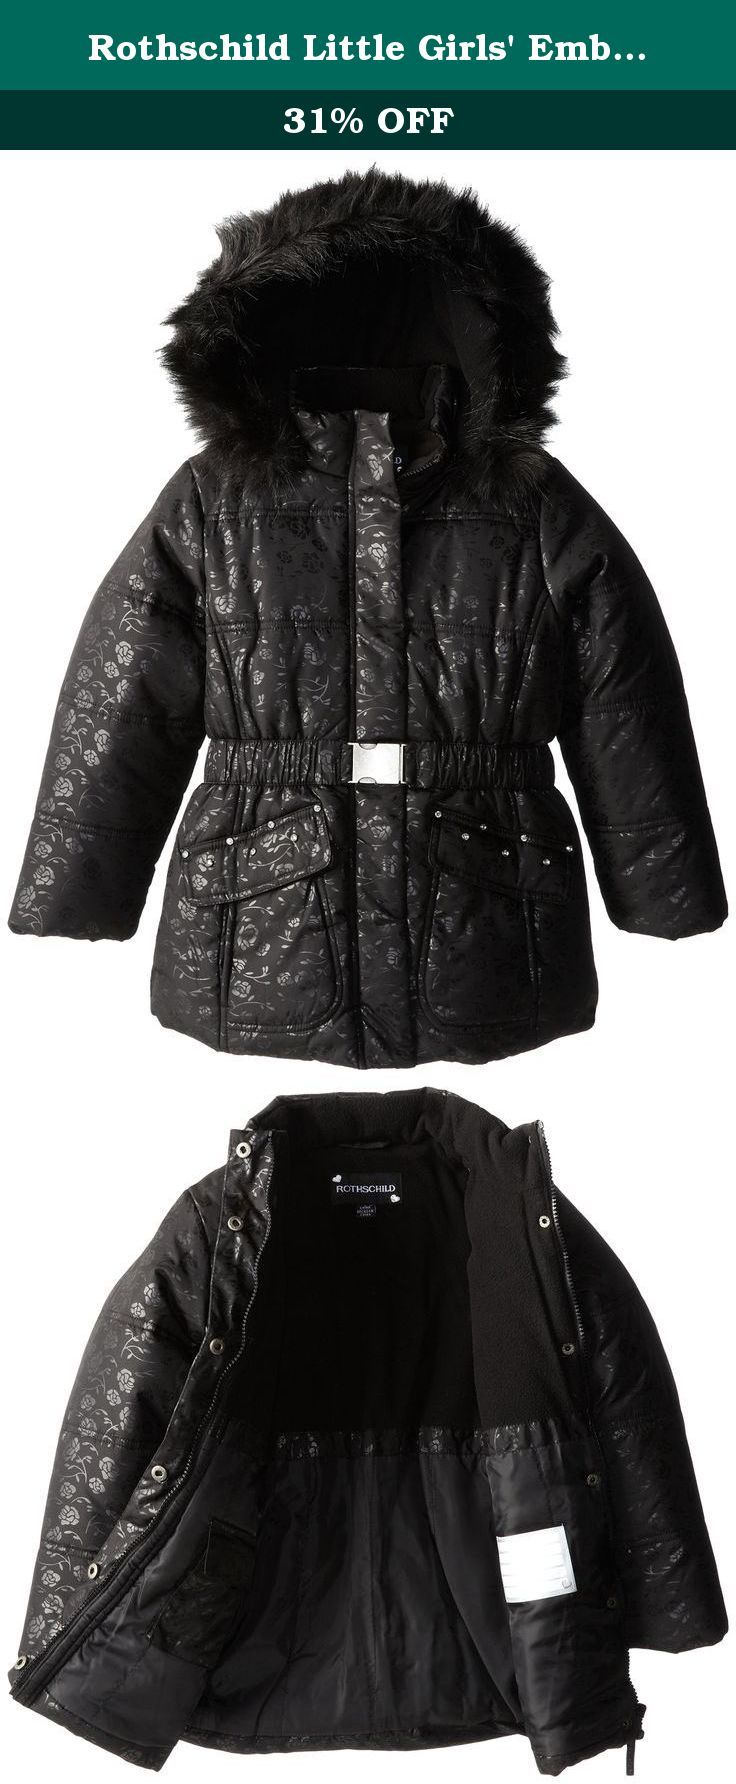 Pin On Down Down Alternative Jackets Coats Clothing Girls Clothing Shoes Jewelry [ 1784 x 736 Pixel ]